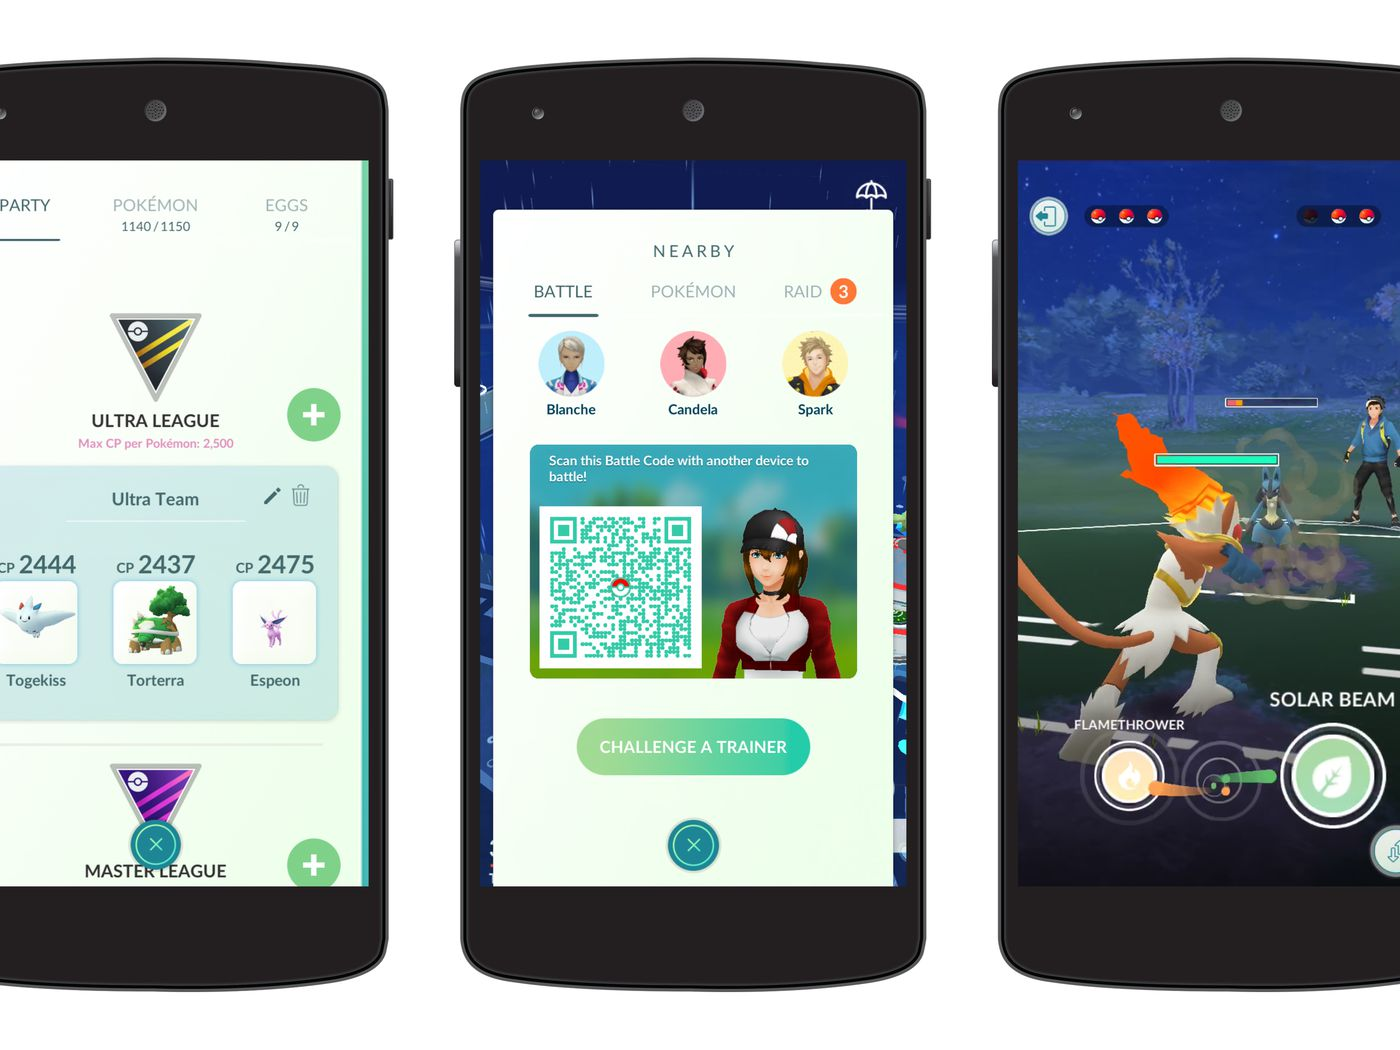 Pokémon Go trainer battles are coming later this month — here's how